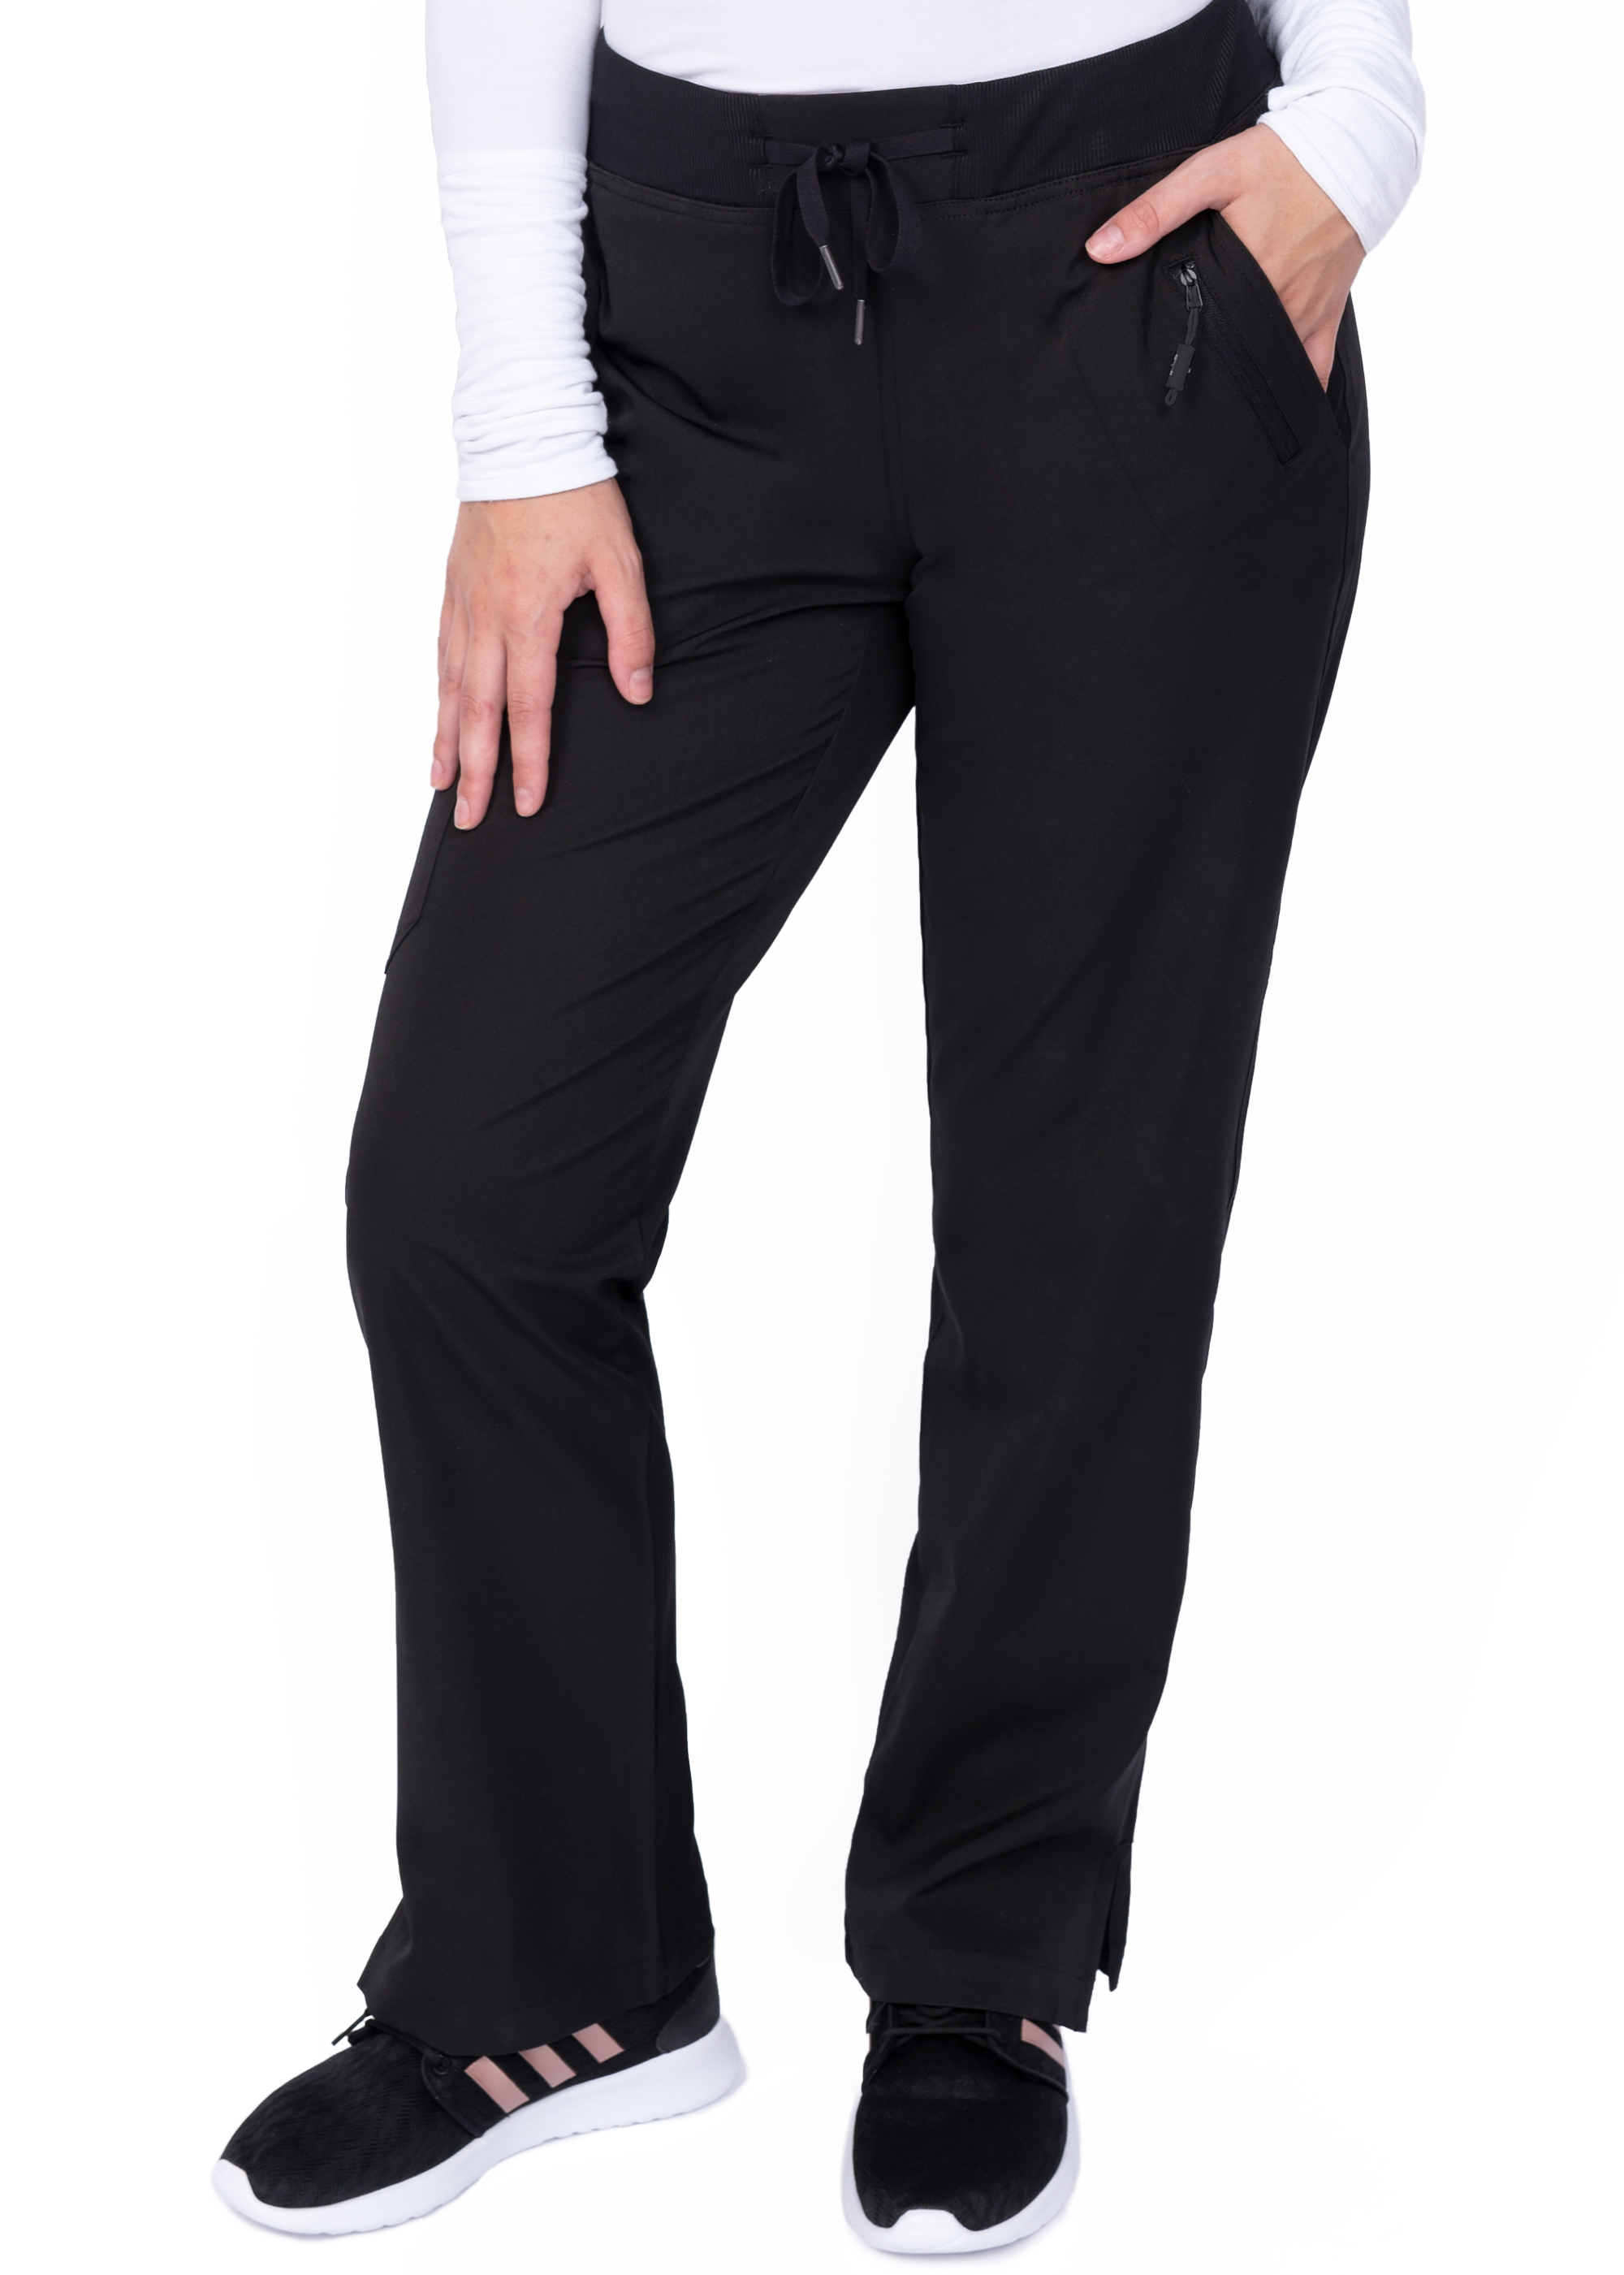 3018 Pant-Ava Therese